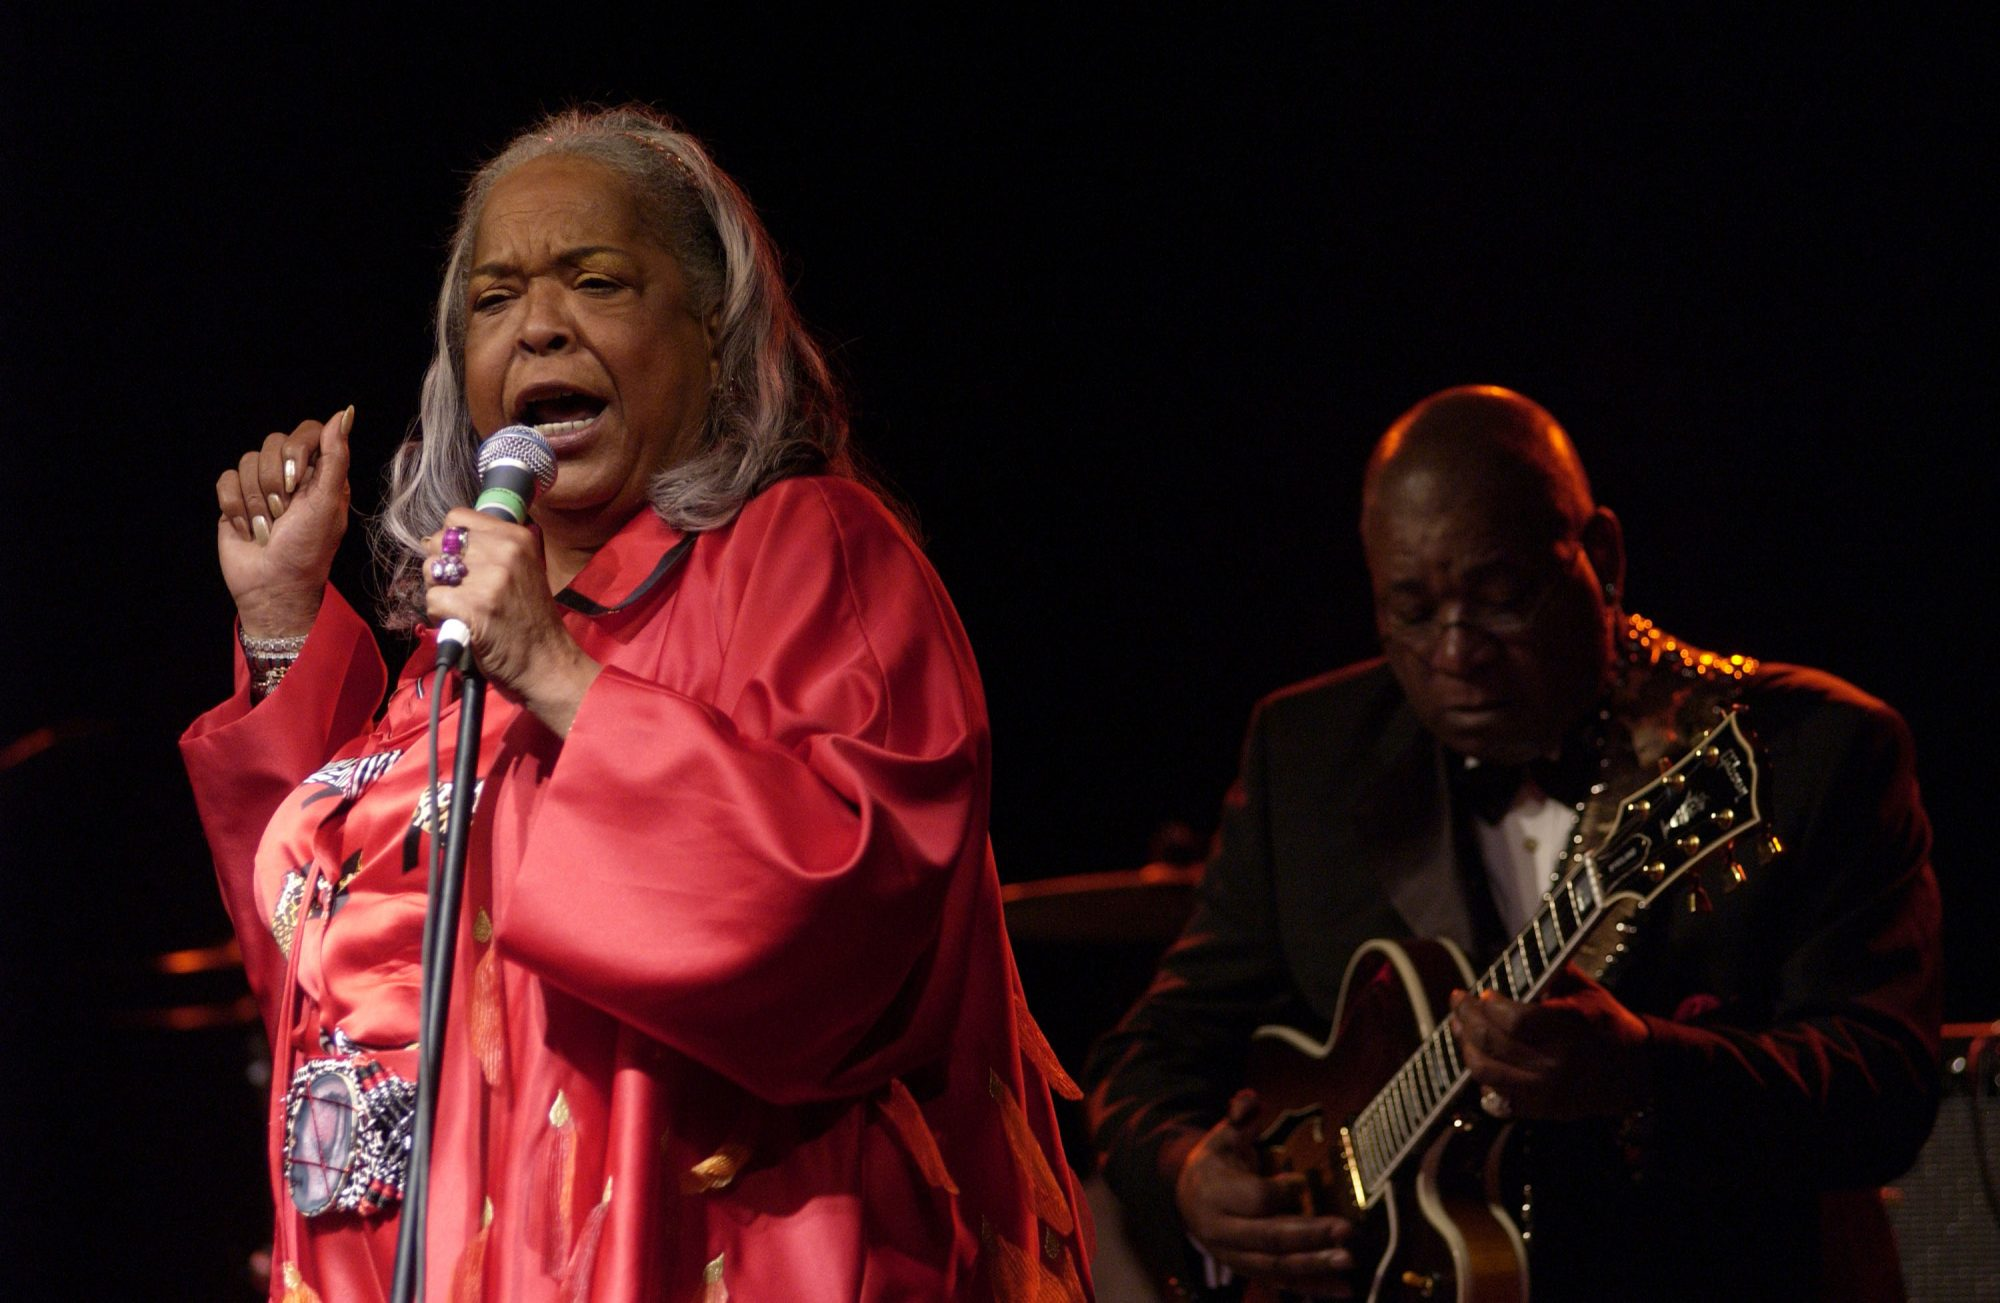 B.B. King's 80th Birthday Celebration and Museum Fundraiser